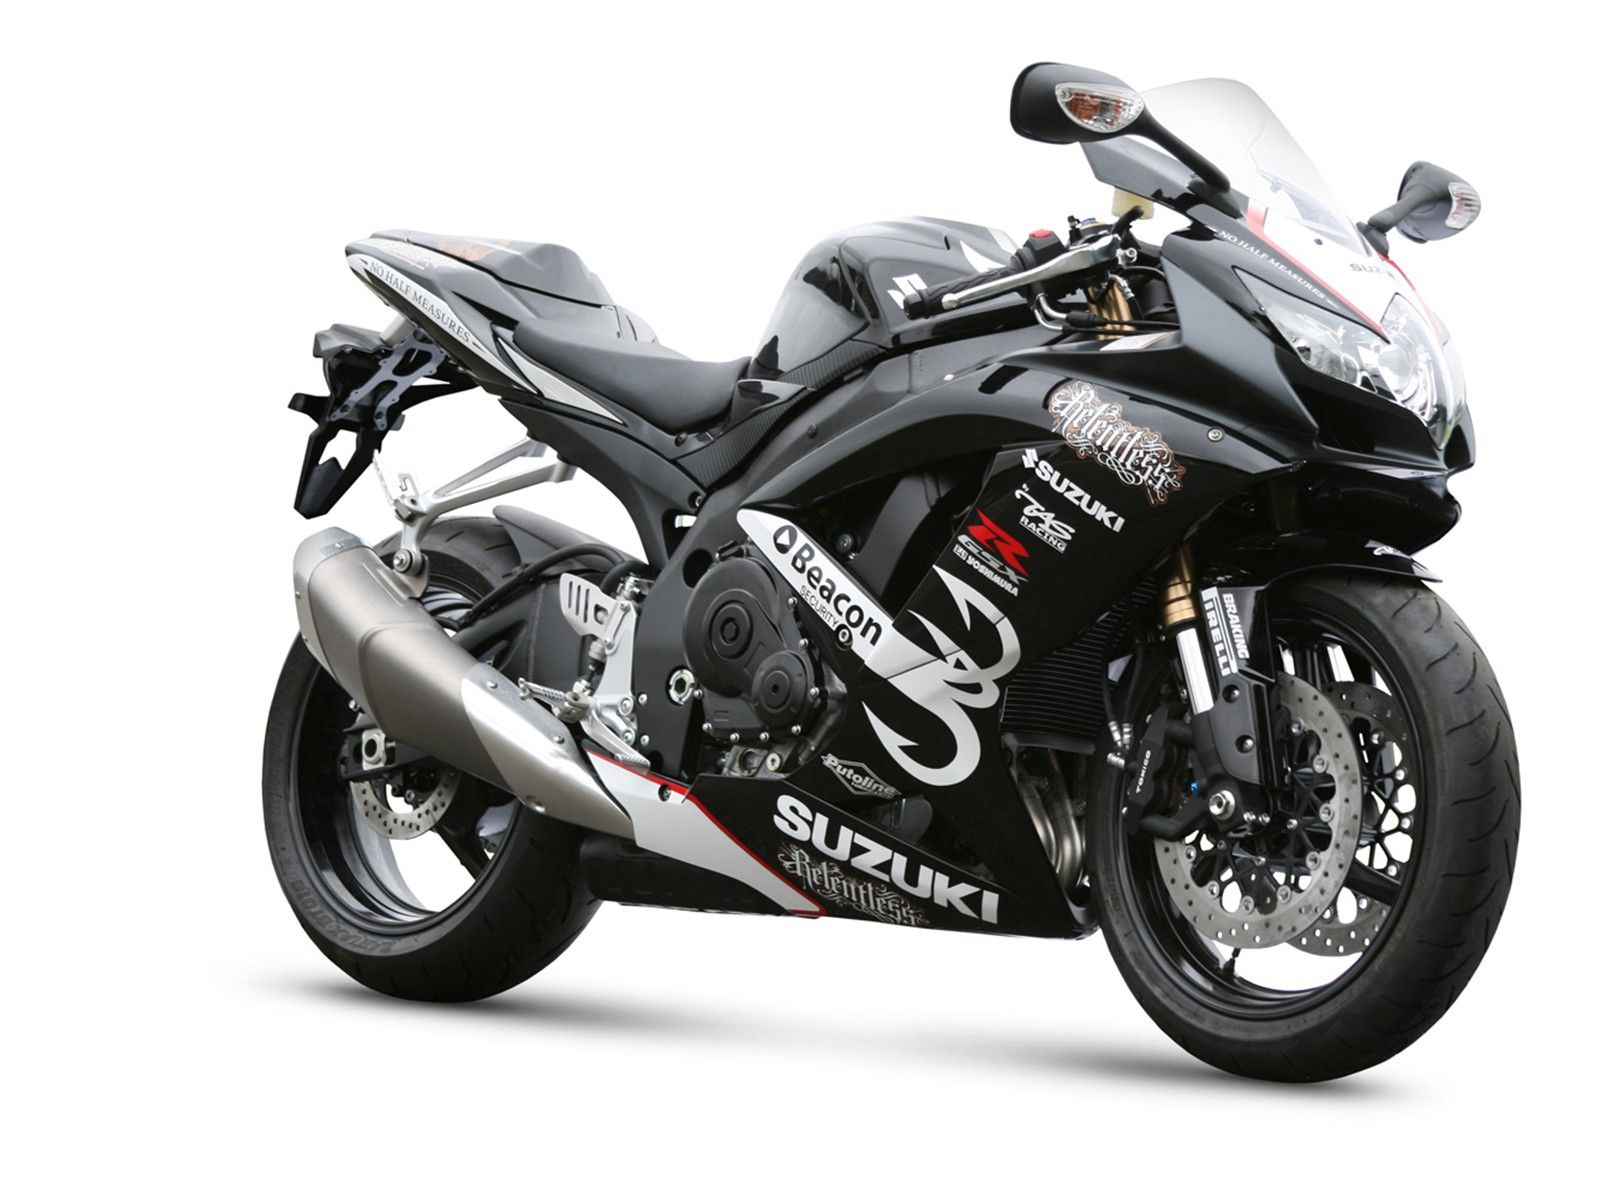 Suzuki gsx r600 sports wallpapers http www nicewallpapers in wallpaper